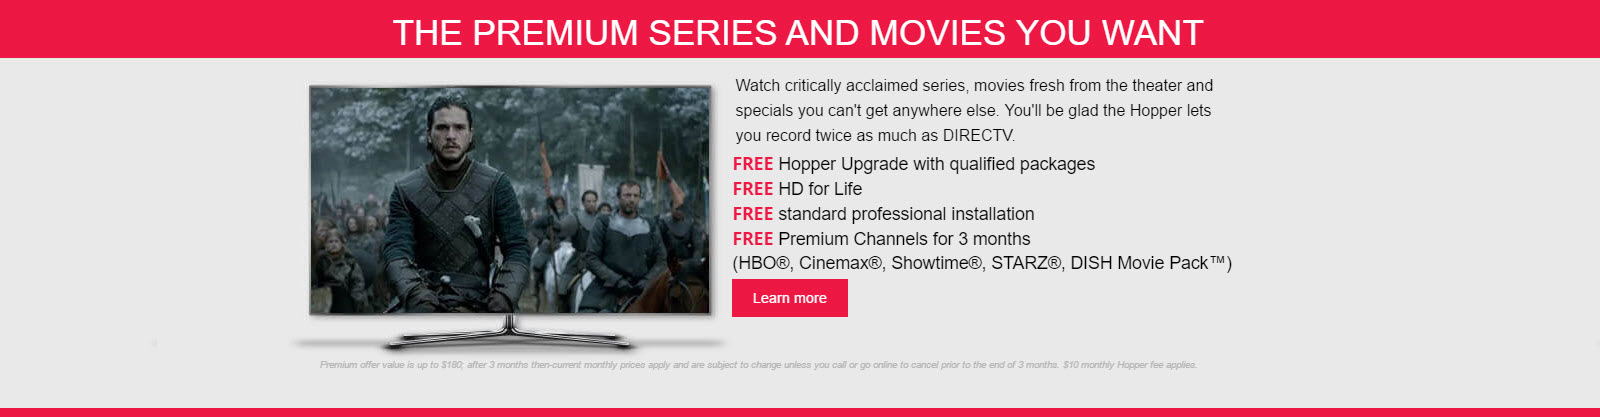 Premium Series and Movies